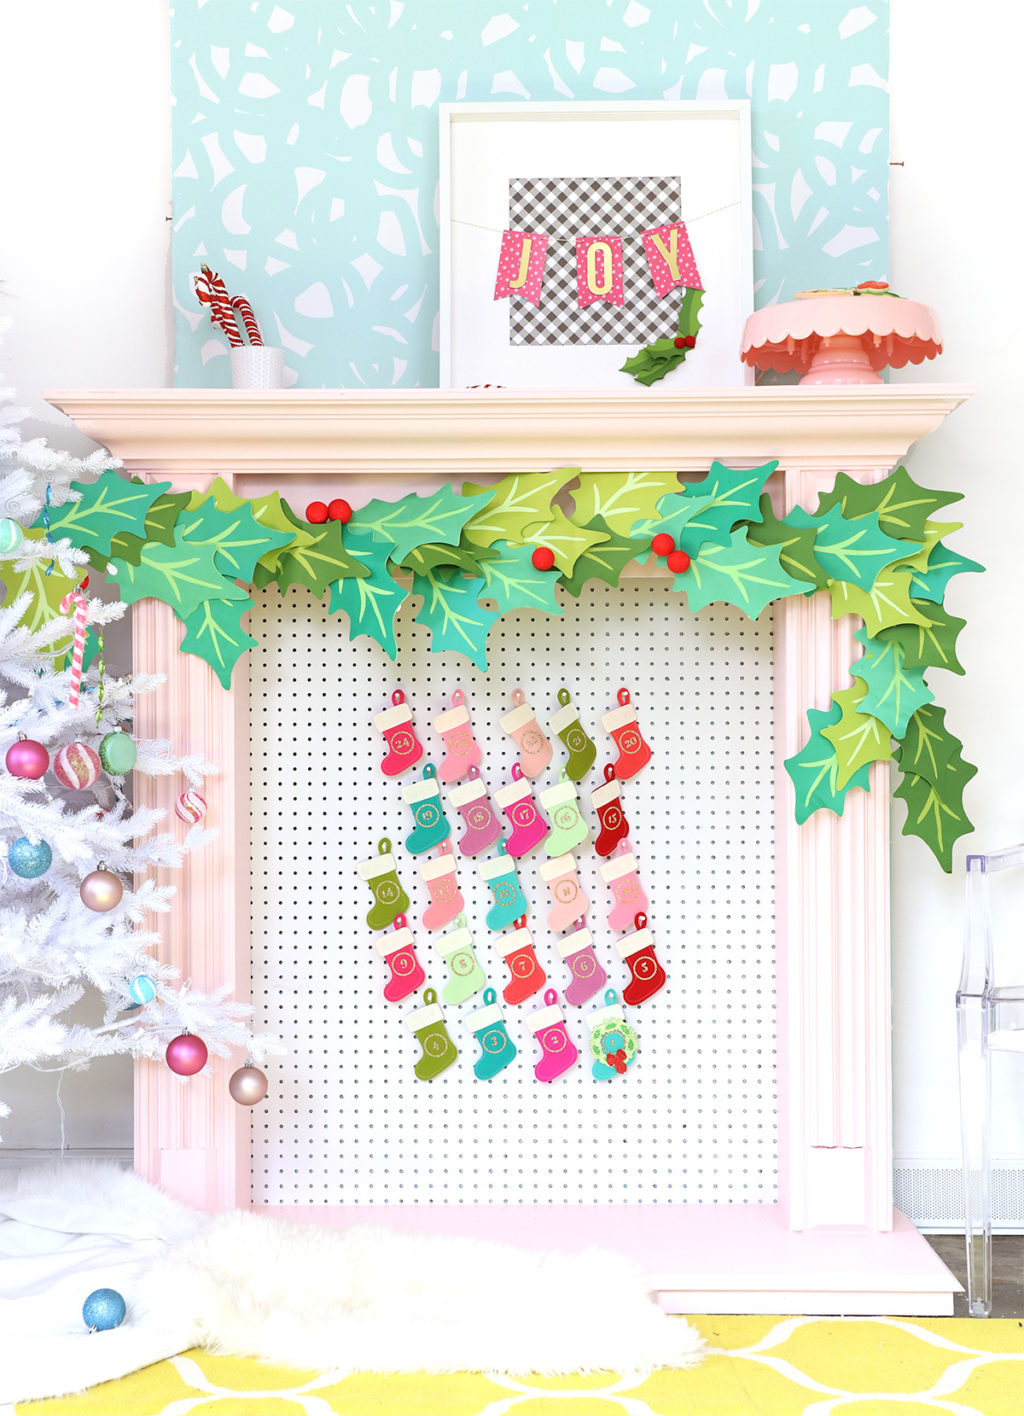 Diy Stocking Advent Calendar : Diy coolest and newest advent calendars shelterness